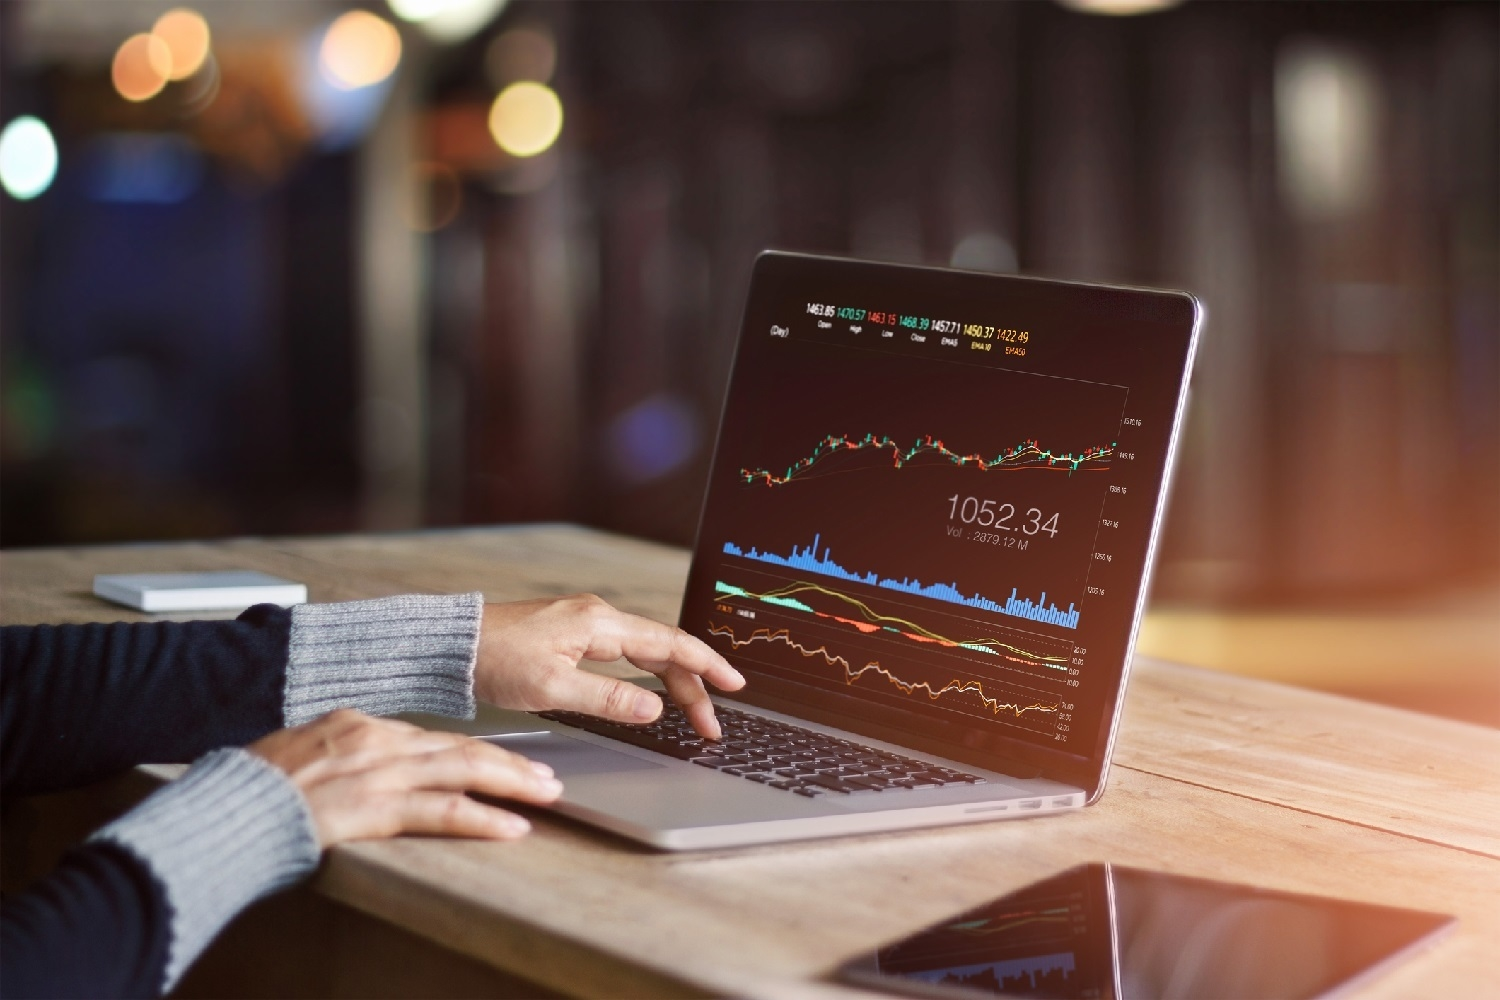 Develop as a Day Trader